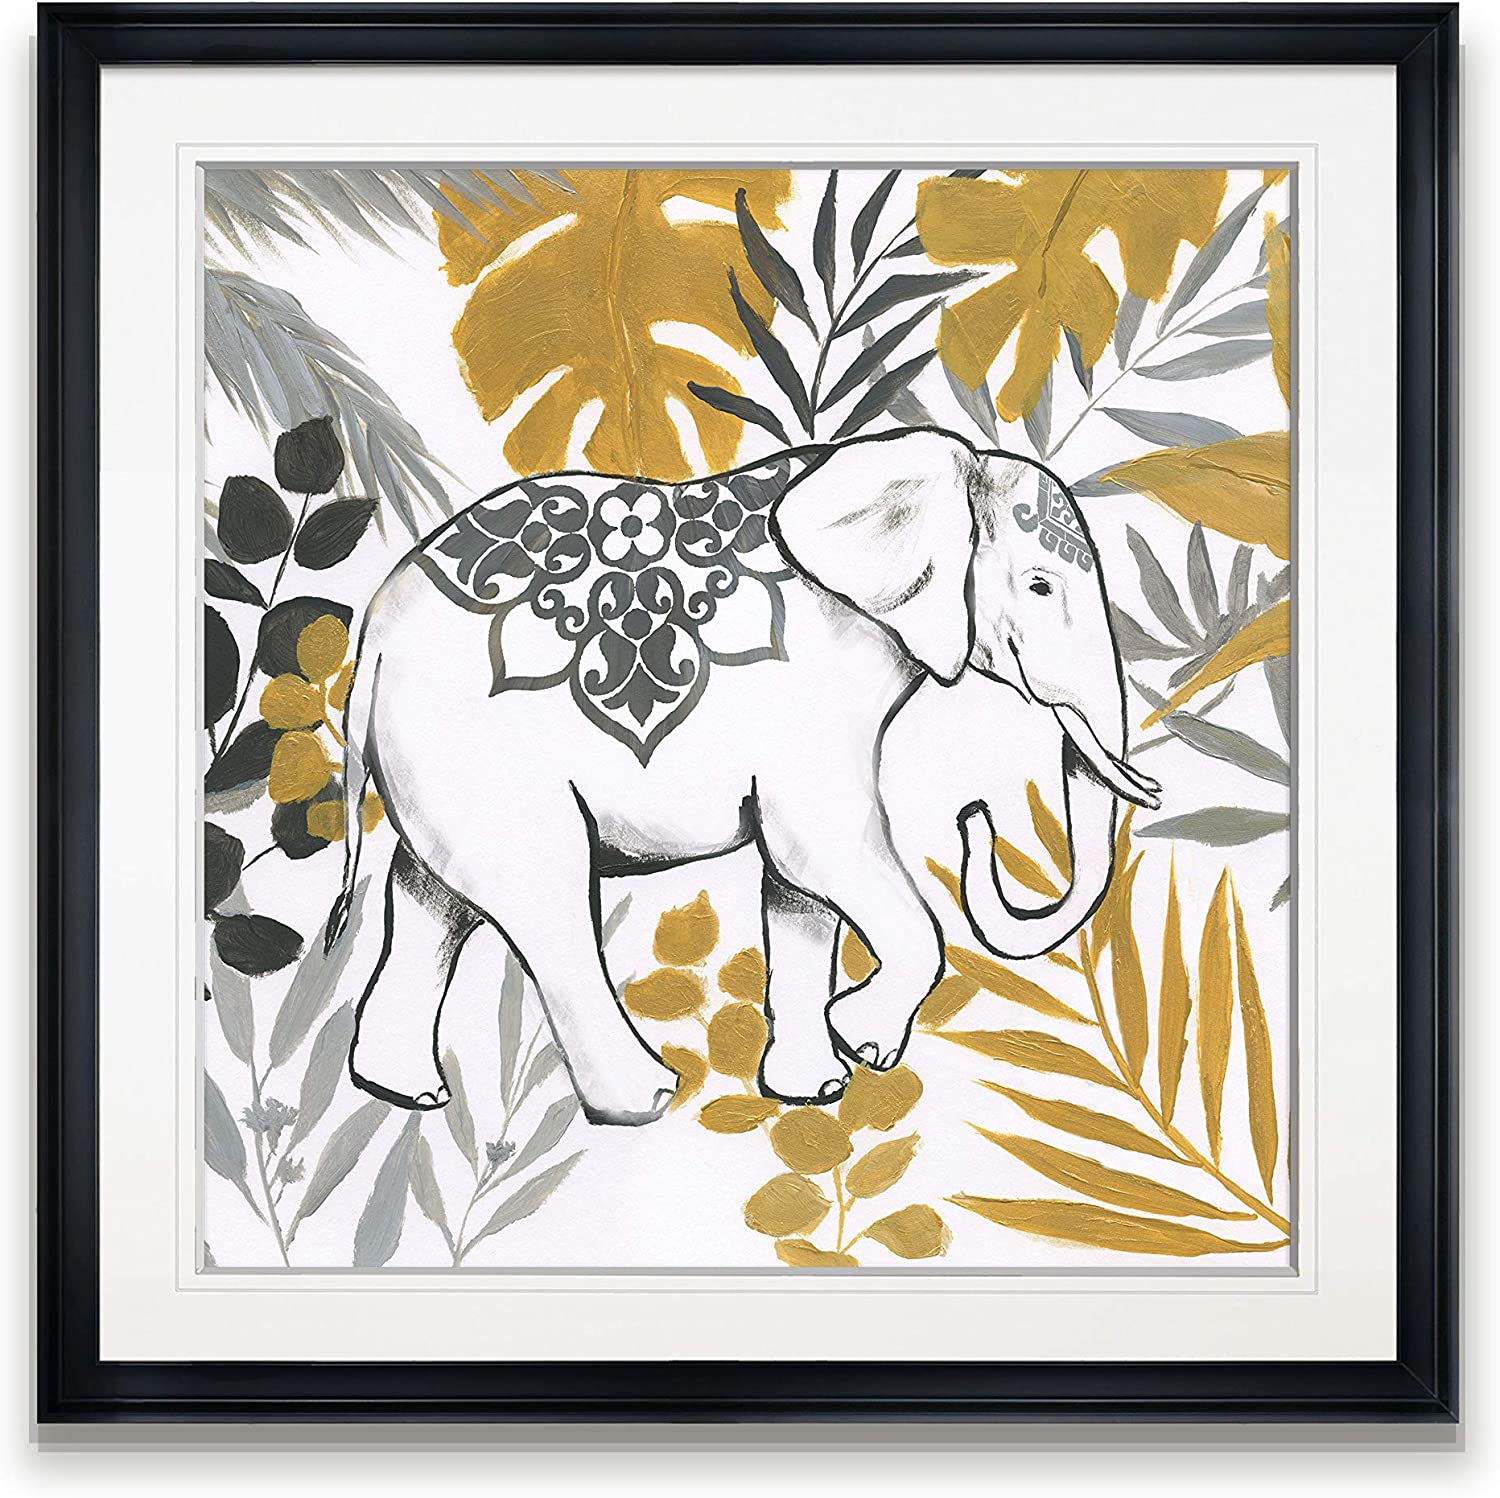 Amazon Com Renditions Gallery Jungle Elephant Wall Decor Gold Grey Tropical Leaves Art Framed Animal Landscape Painting Giclee Canvas Prints 24x24 Black Posters Prints All illustrations are free to download! renditions gallery jungle elephant wall